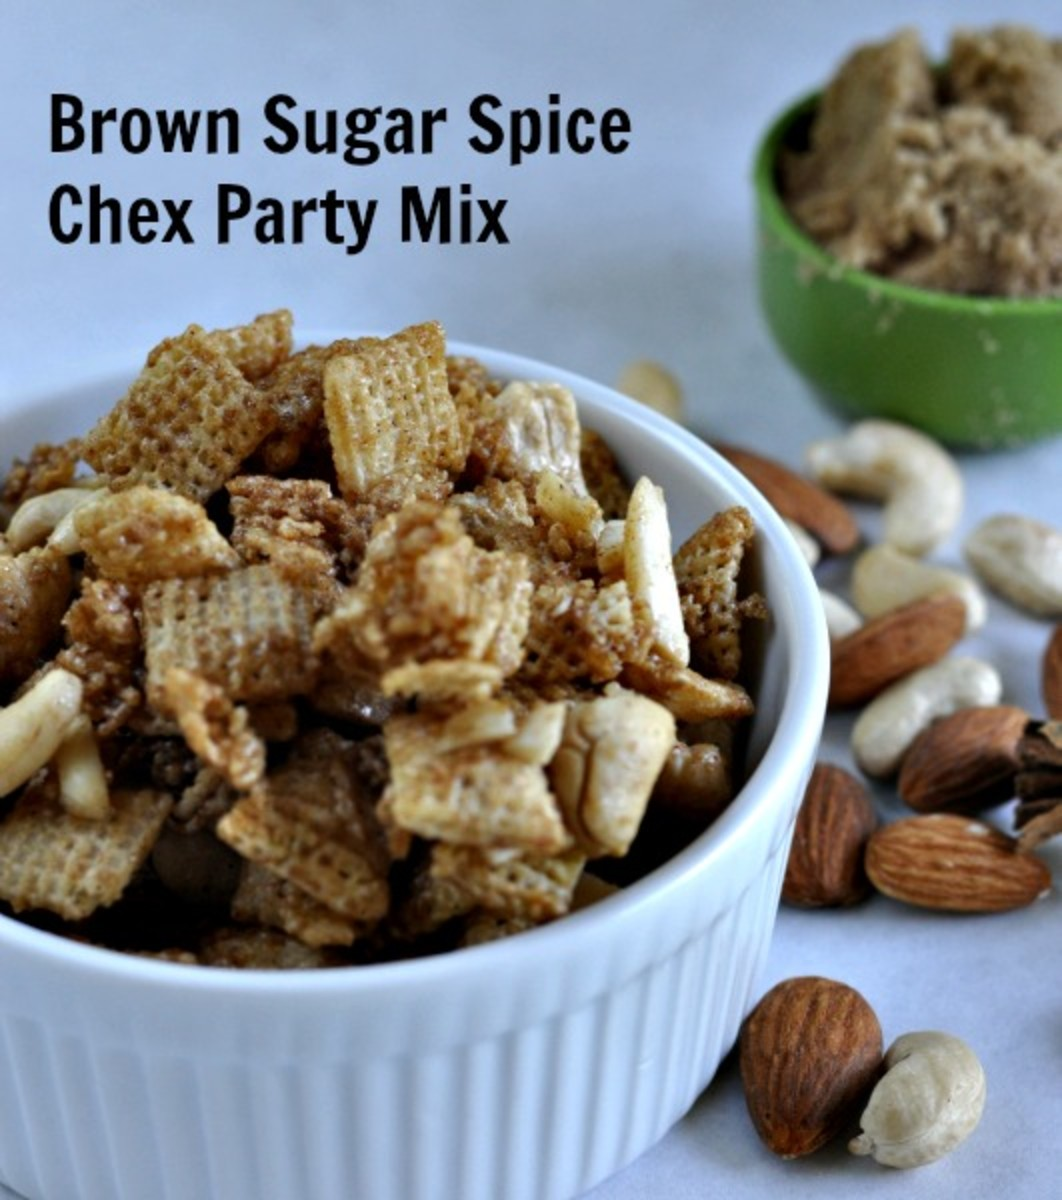 Brown Sugar Spice Chex Party Mix - Title